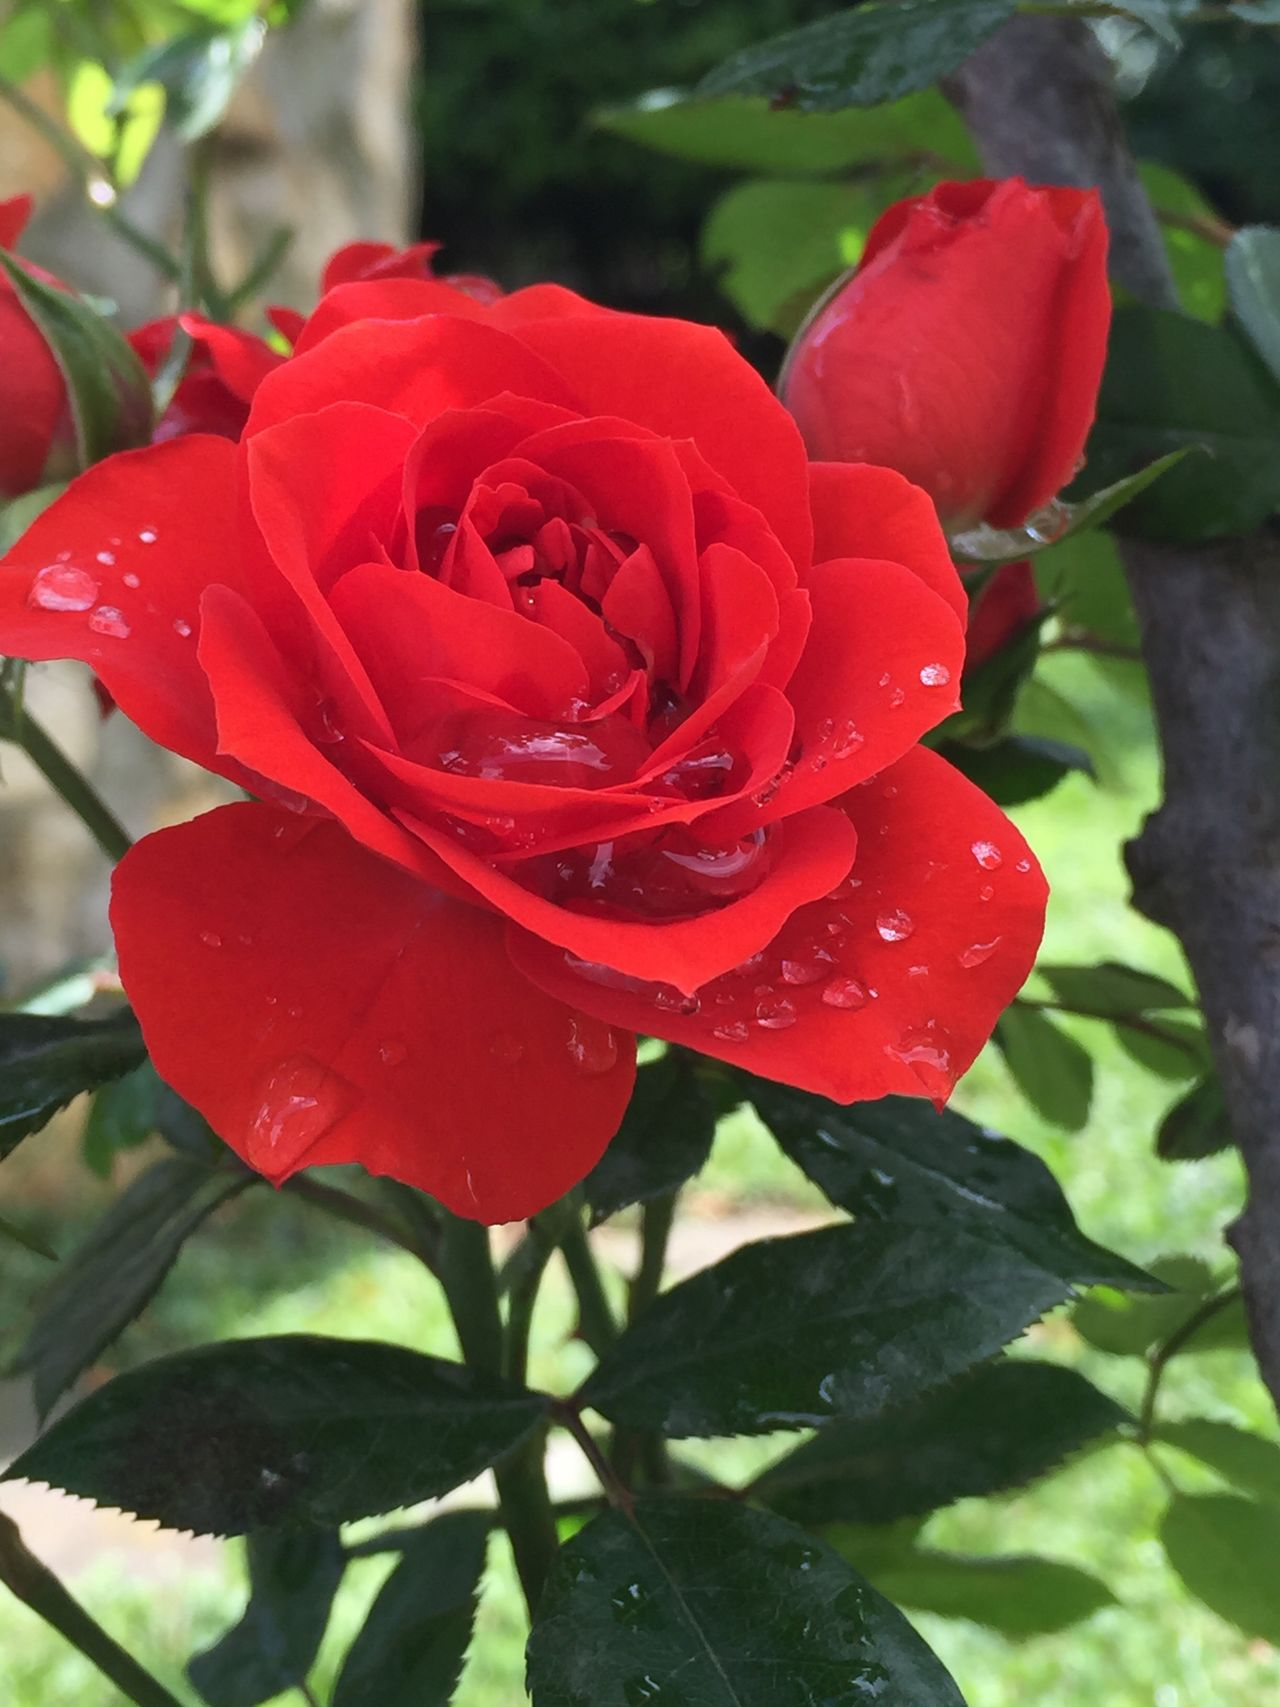 Flower Petal Nature Rose - Flower Beauty In Nature Growth Red Fragility Flower Head No People Freshness Plant Wet Drop Blooming Day Leaf Outdoors Water Close-up